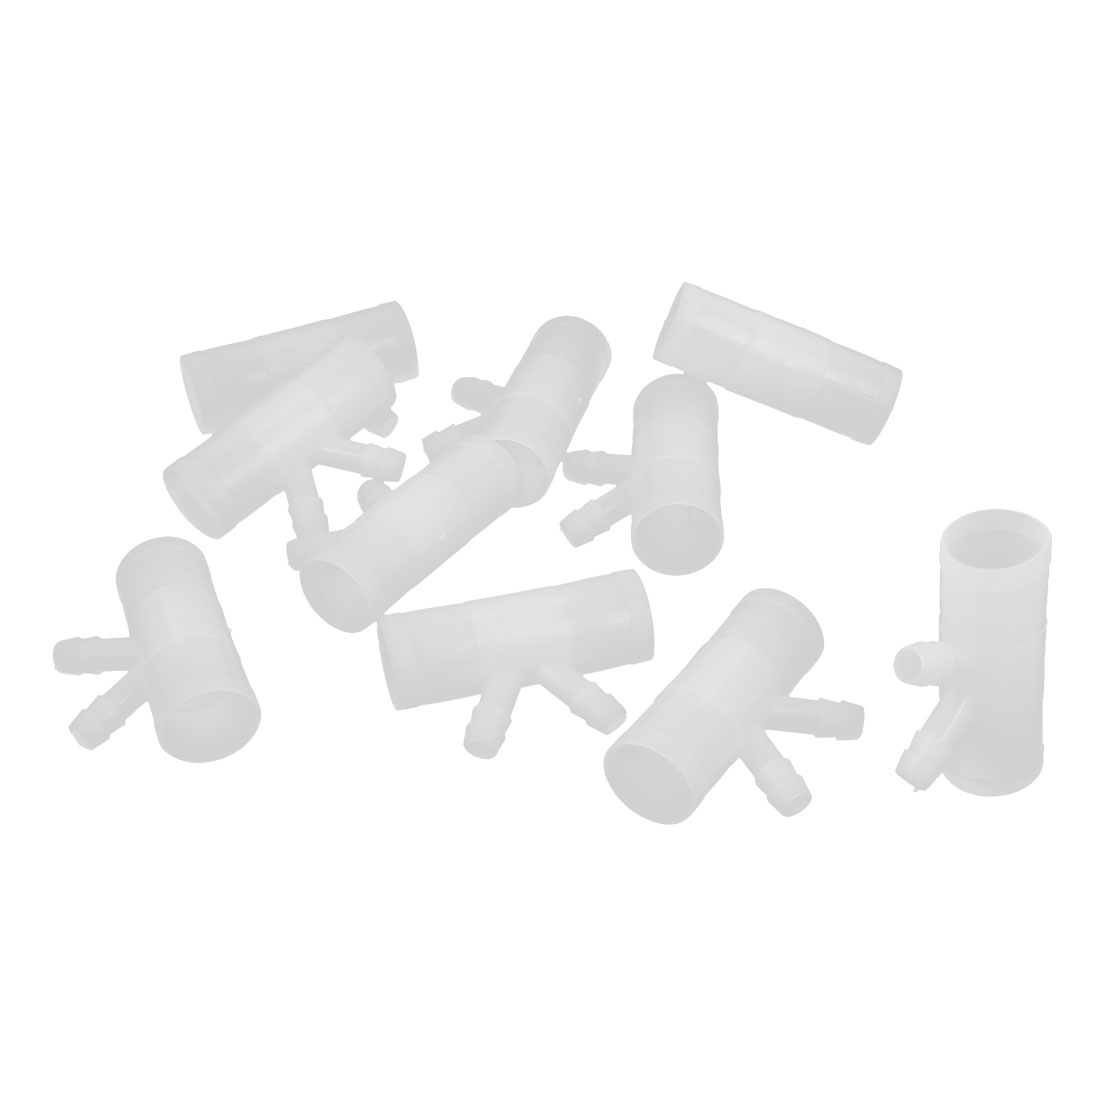 10pcs White Plastic 3 Way Fount Feeder Drinker Connector for Pet Rabbit Hare